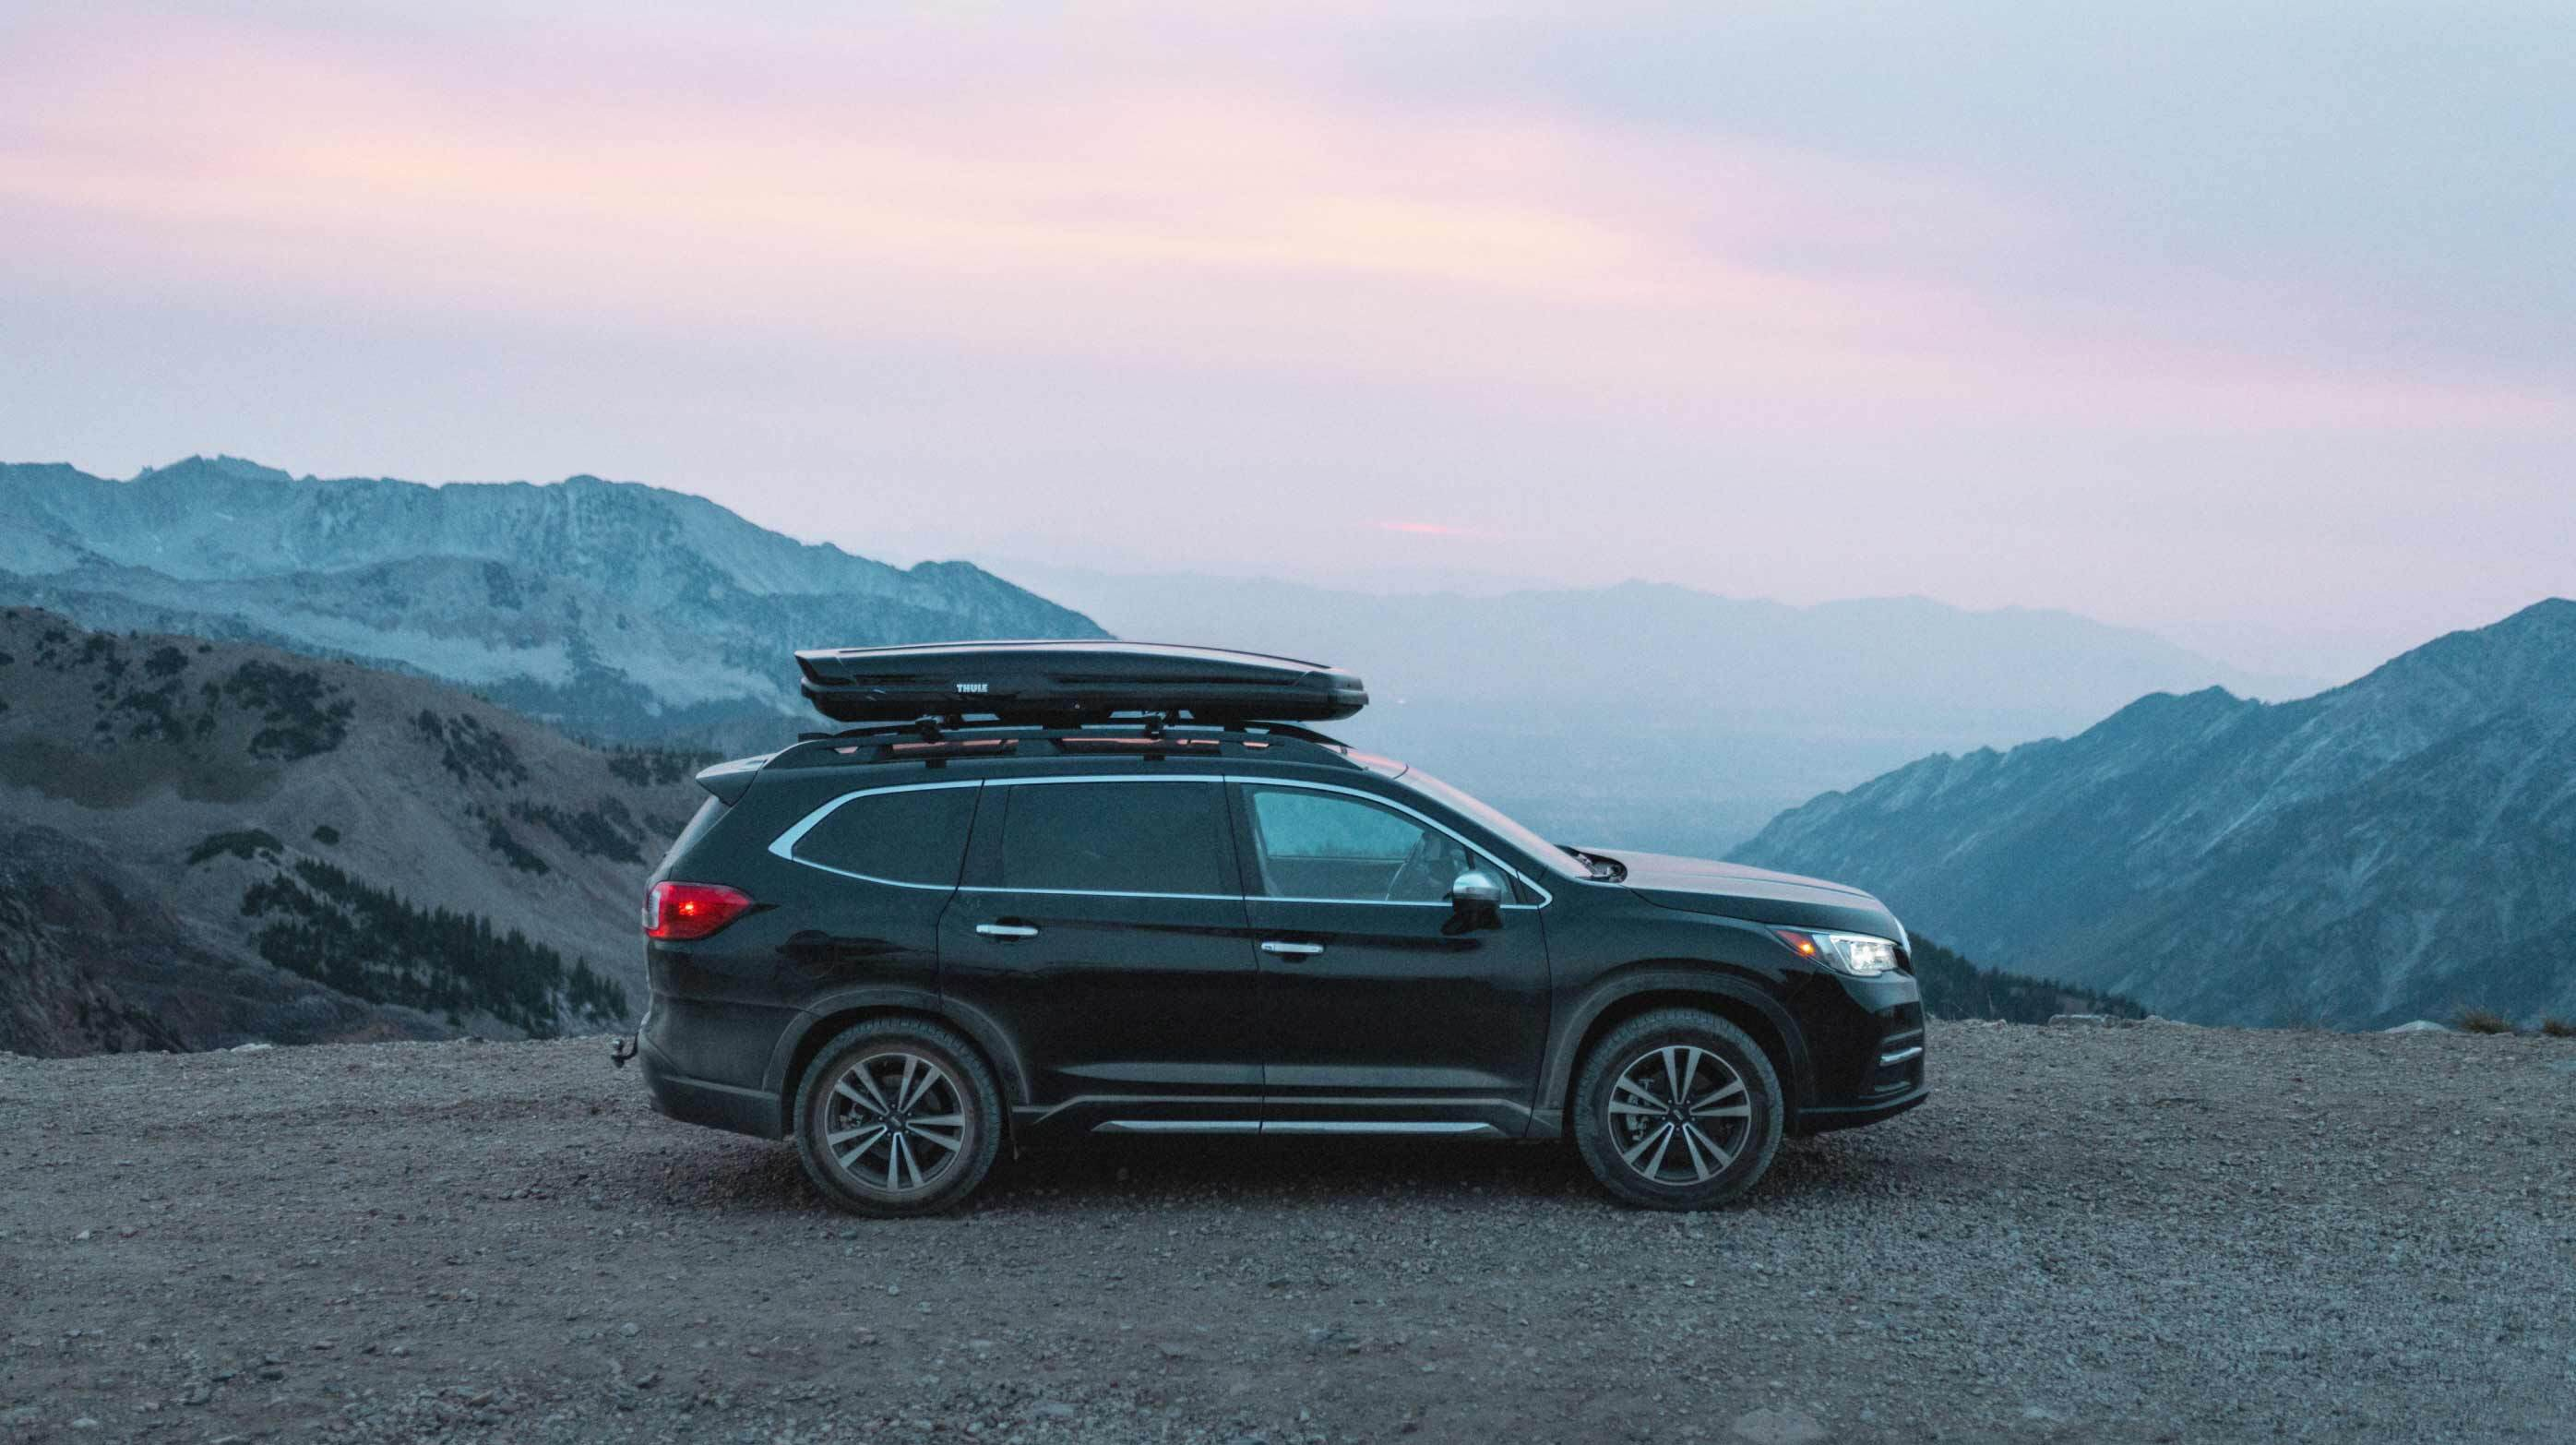 Black SUV equipped with Nokian One tires sitting on the top of a mountain